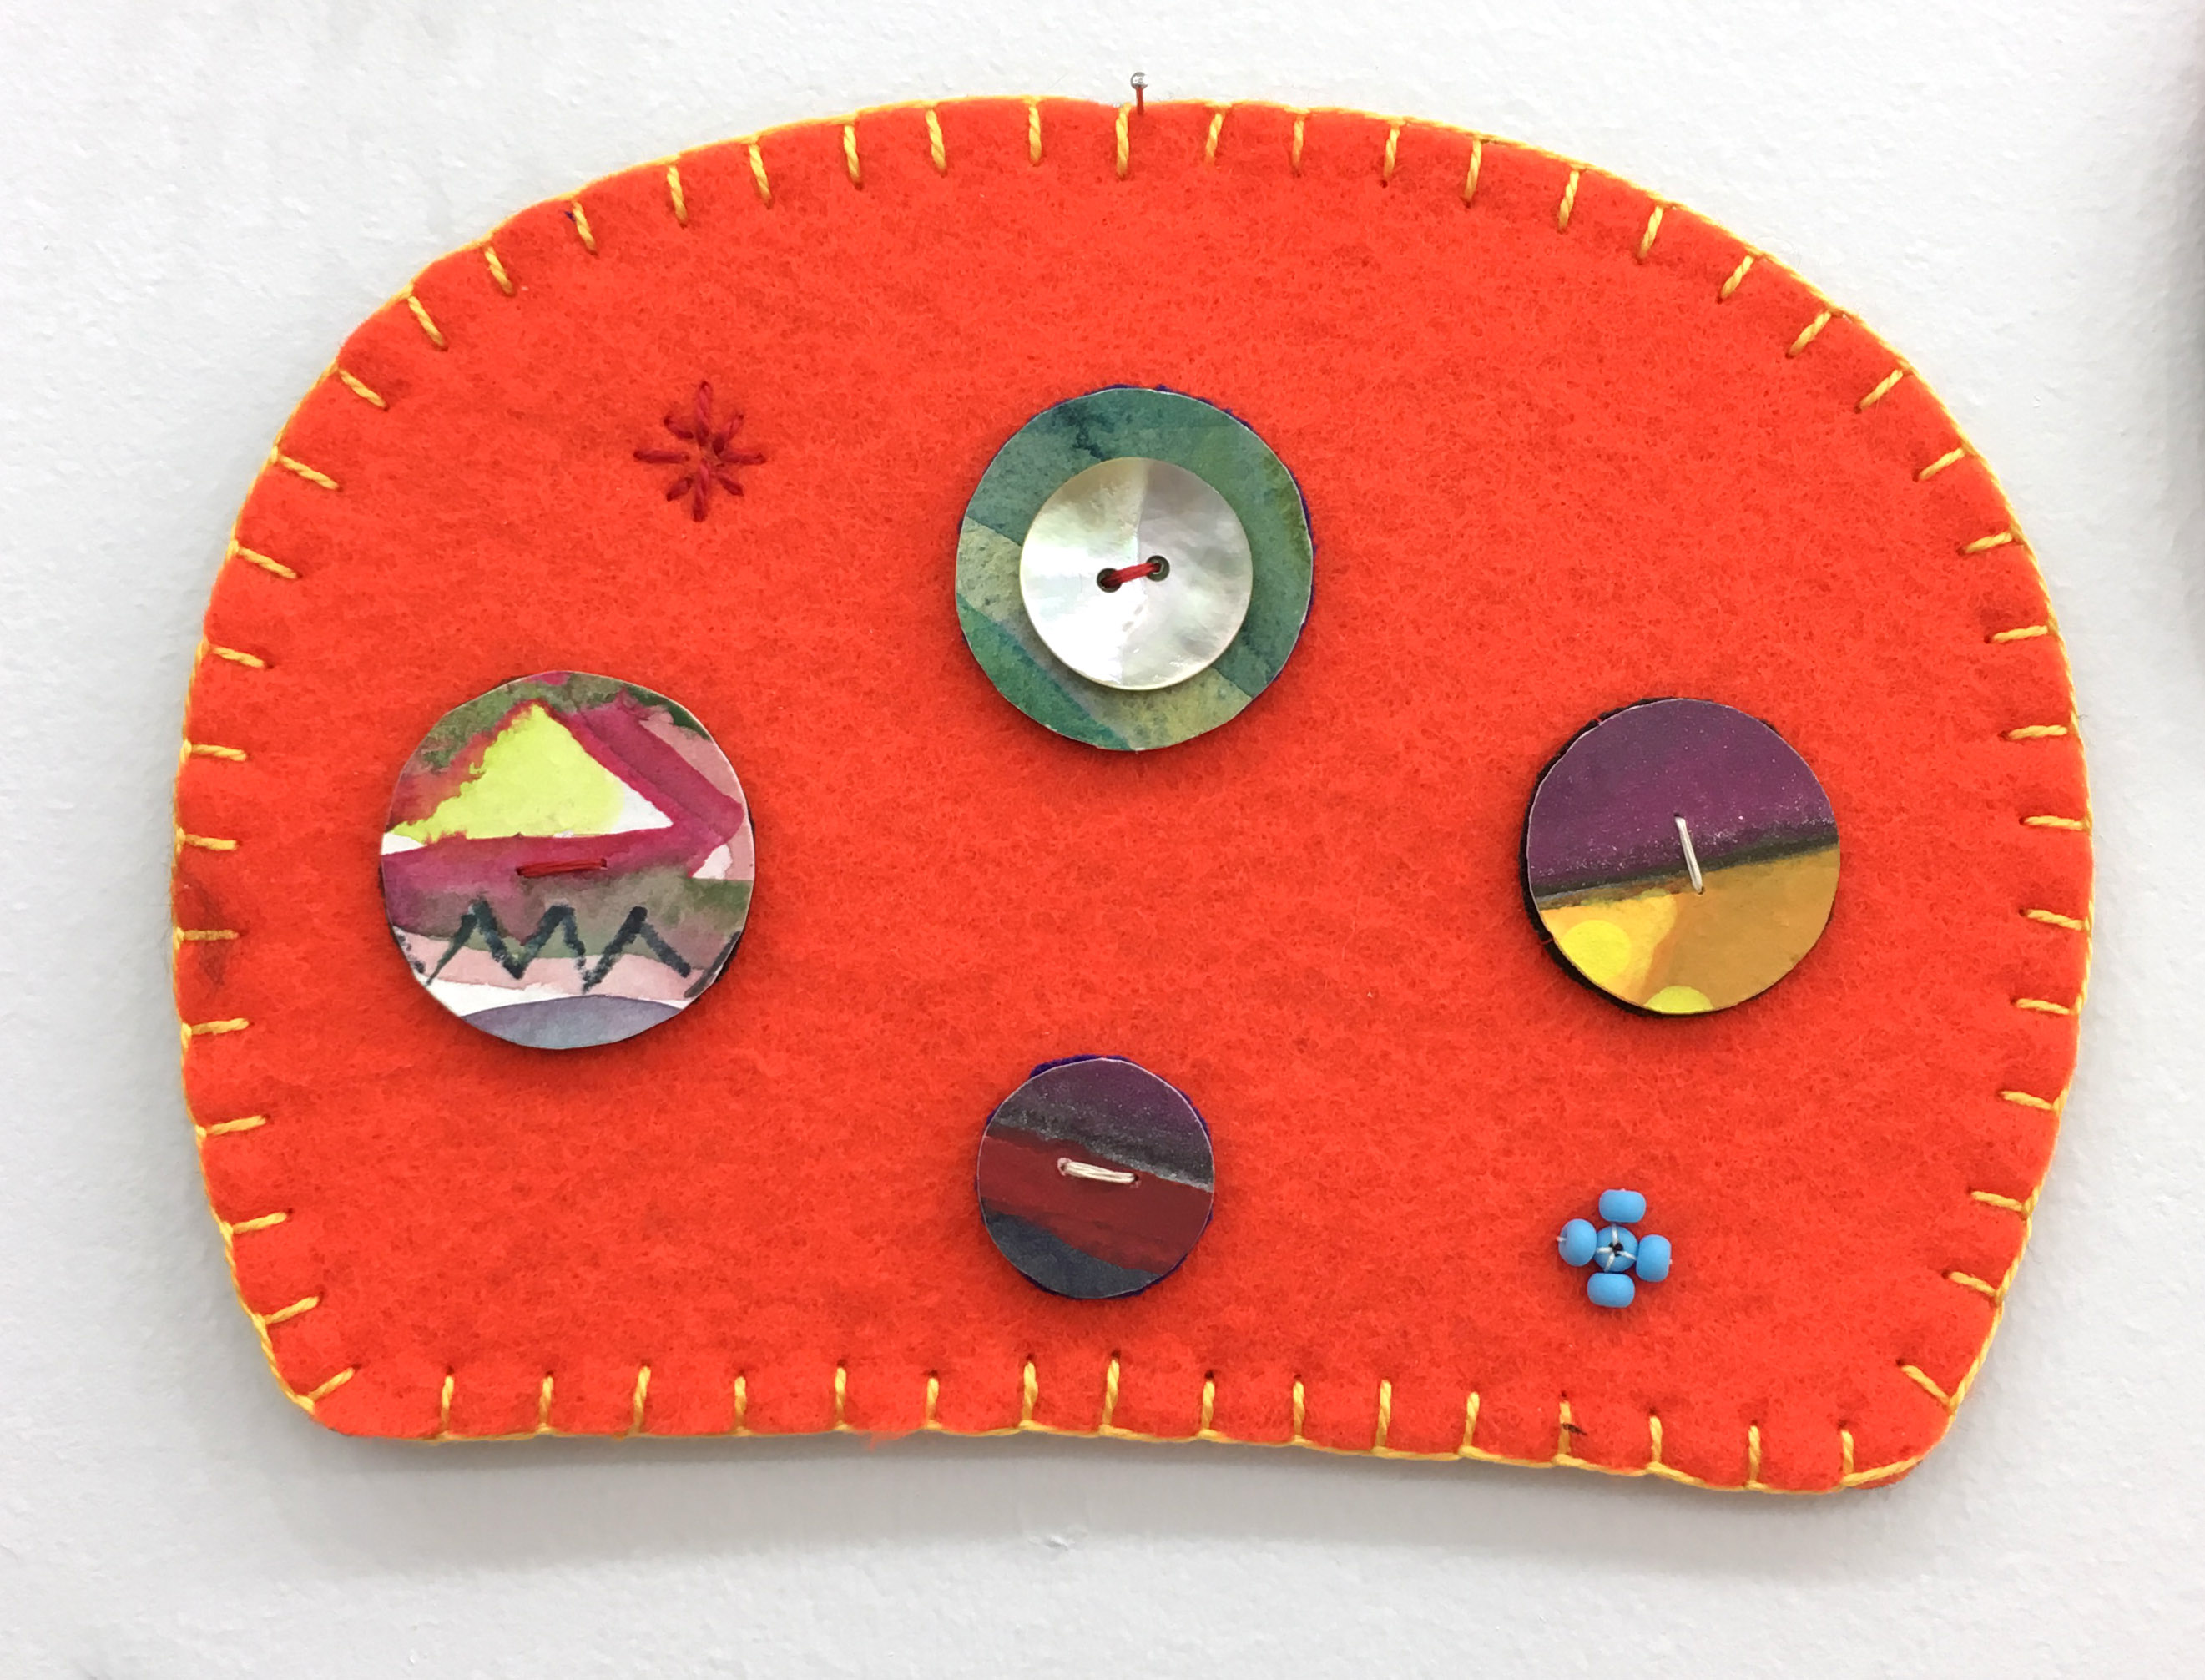 "Ovoid Felts, Charlene Vickers (Anishinabe), Watercolour, paper, shell buttons, glass beads on felt with embroidery edges, 6.5"" x 4.5"", SOLD"